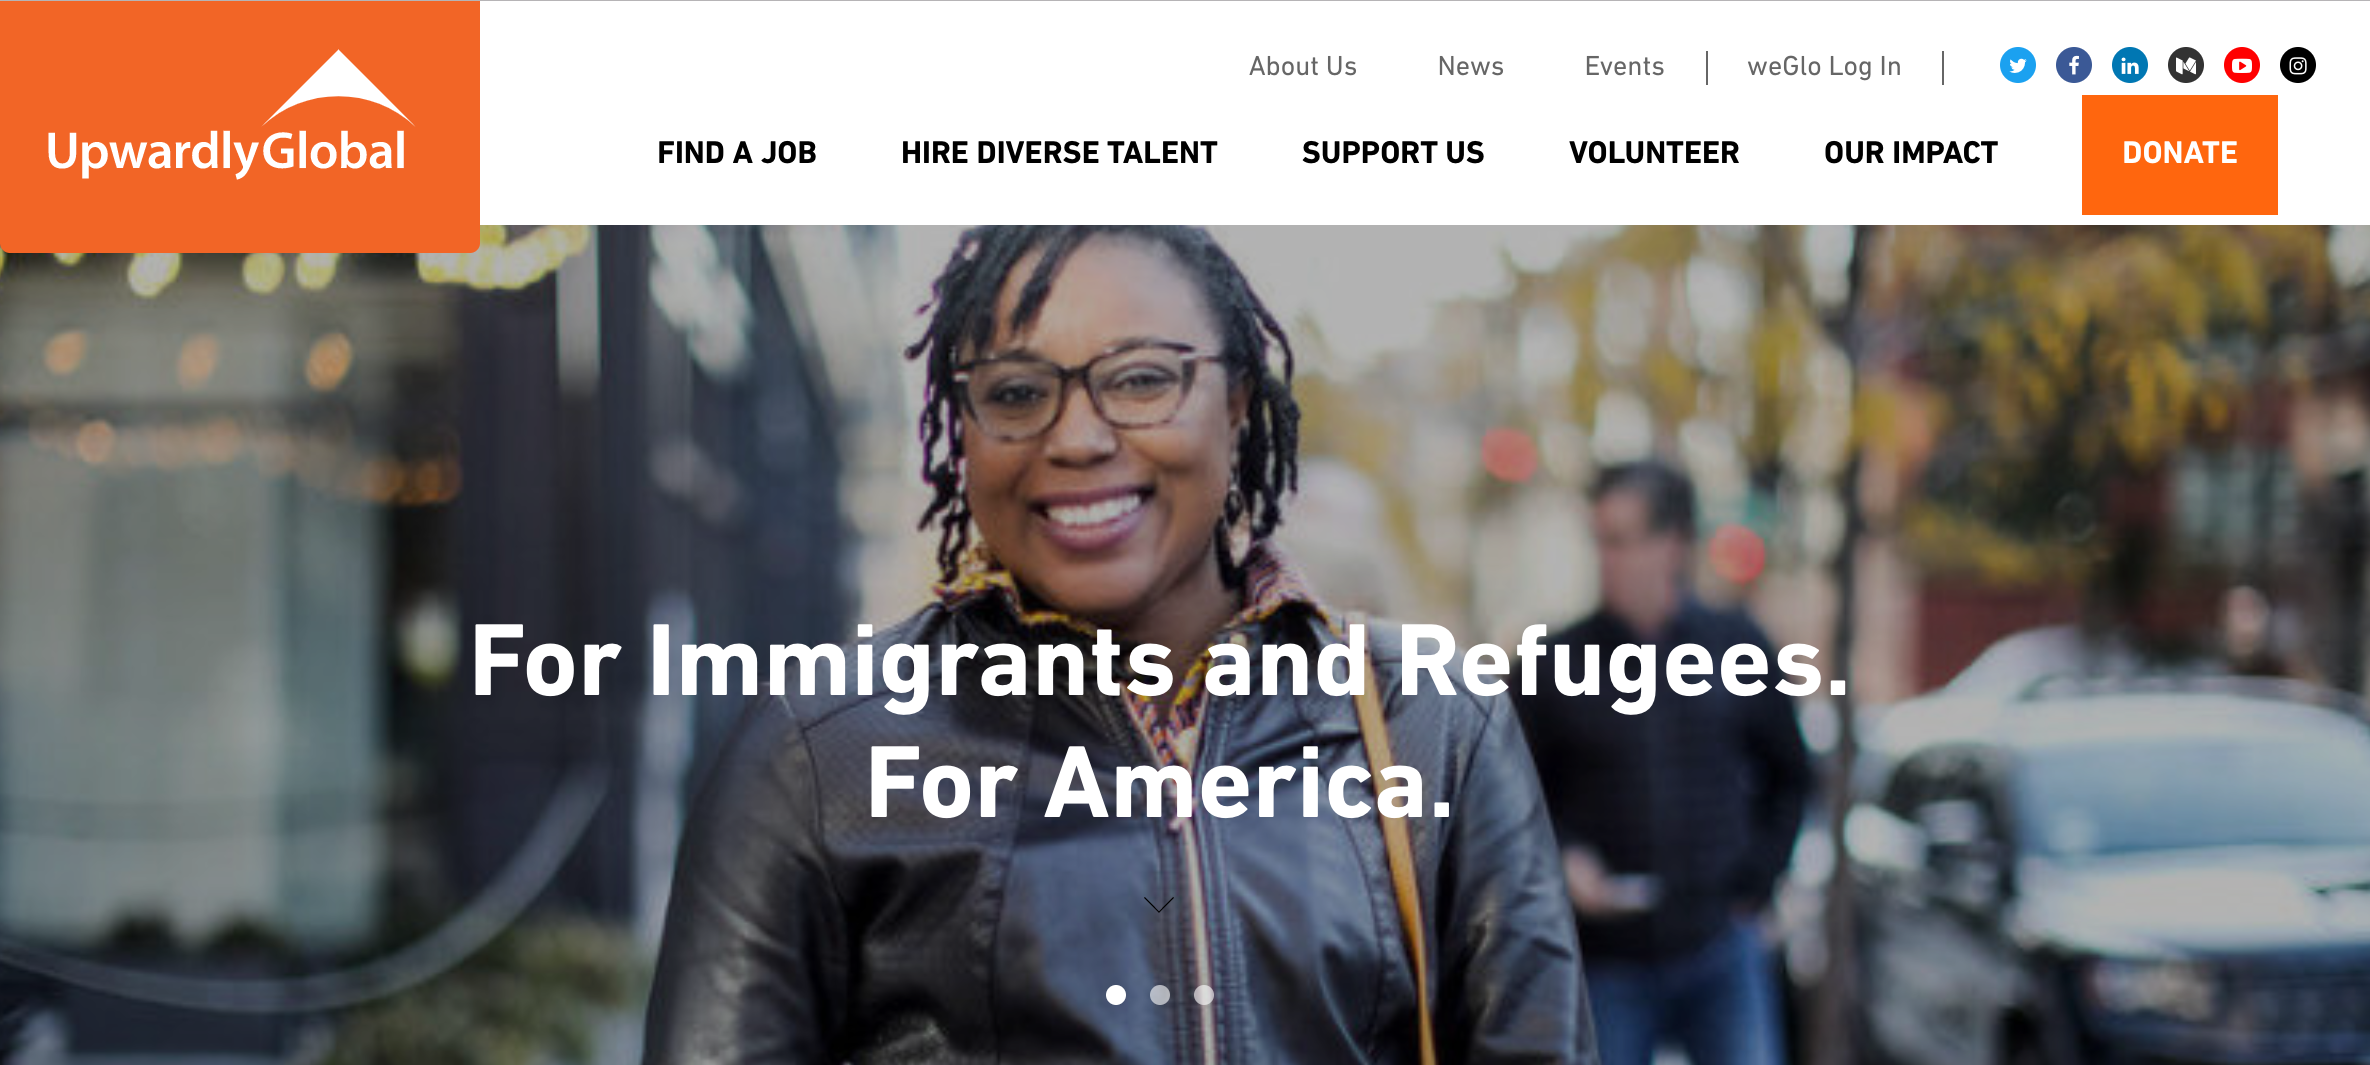 Upwardly Global, A website that helps immigrants find work